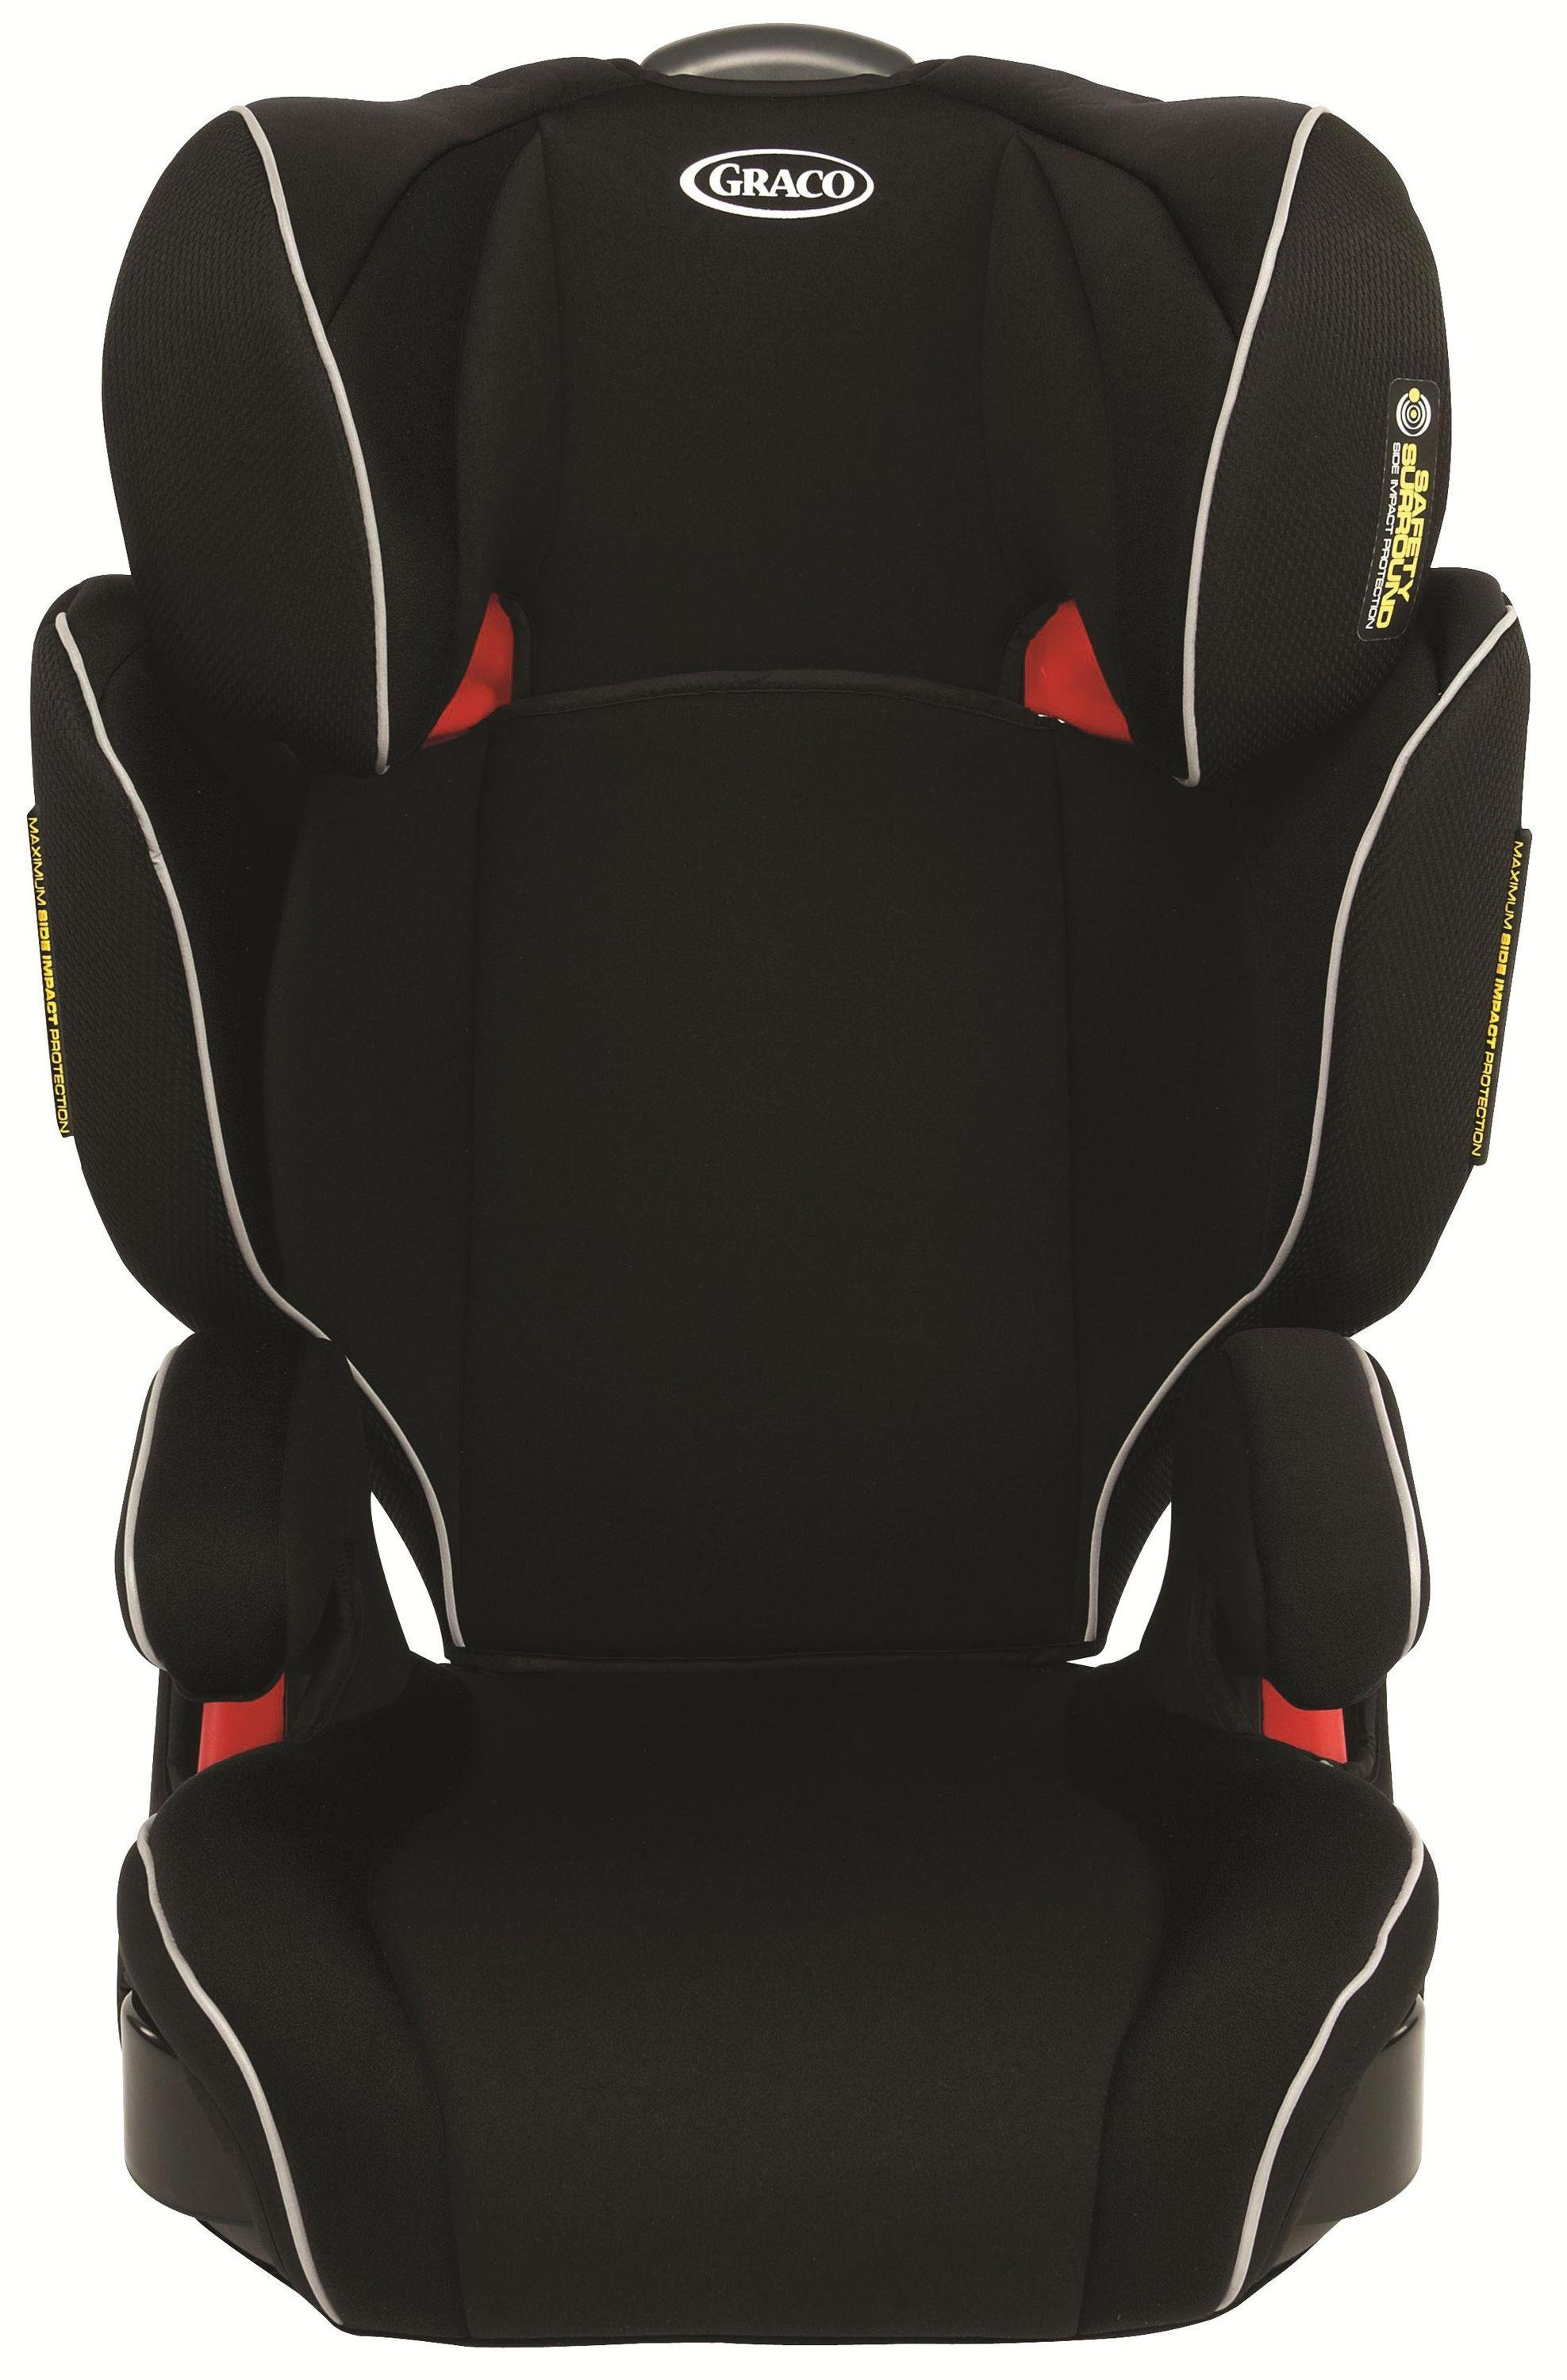 Image of Assure Sport Luxe Booster Safety Surround Car Seat.